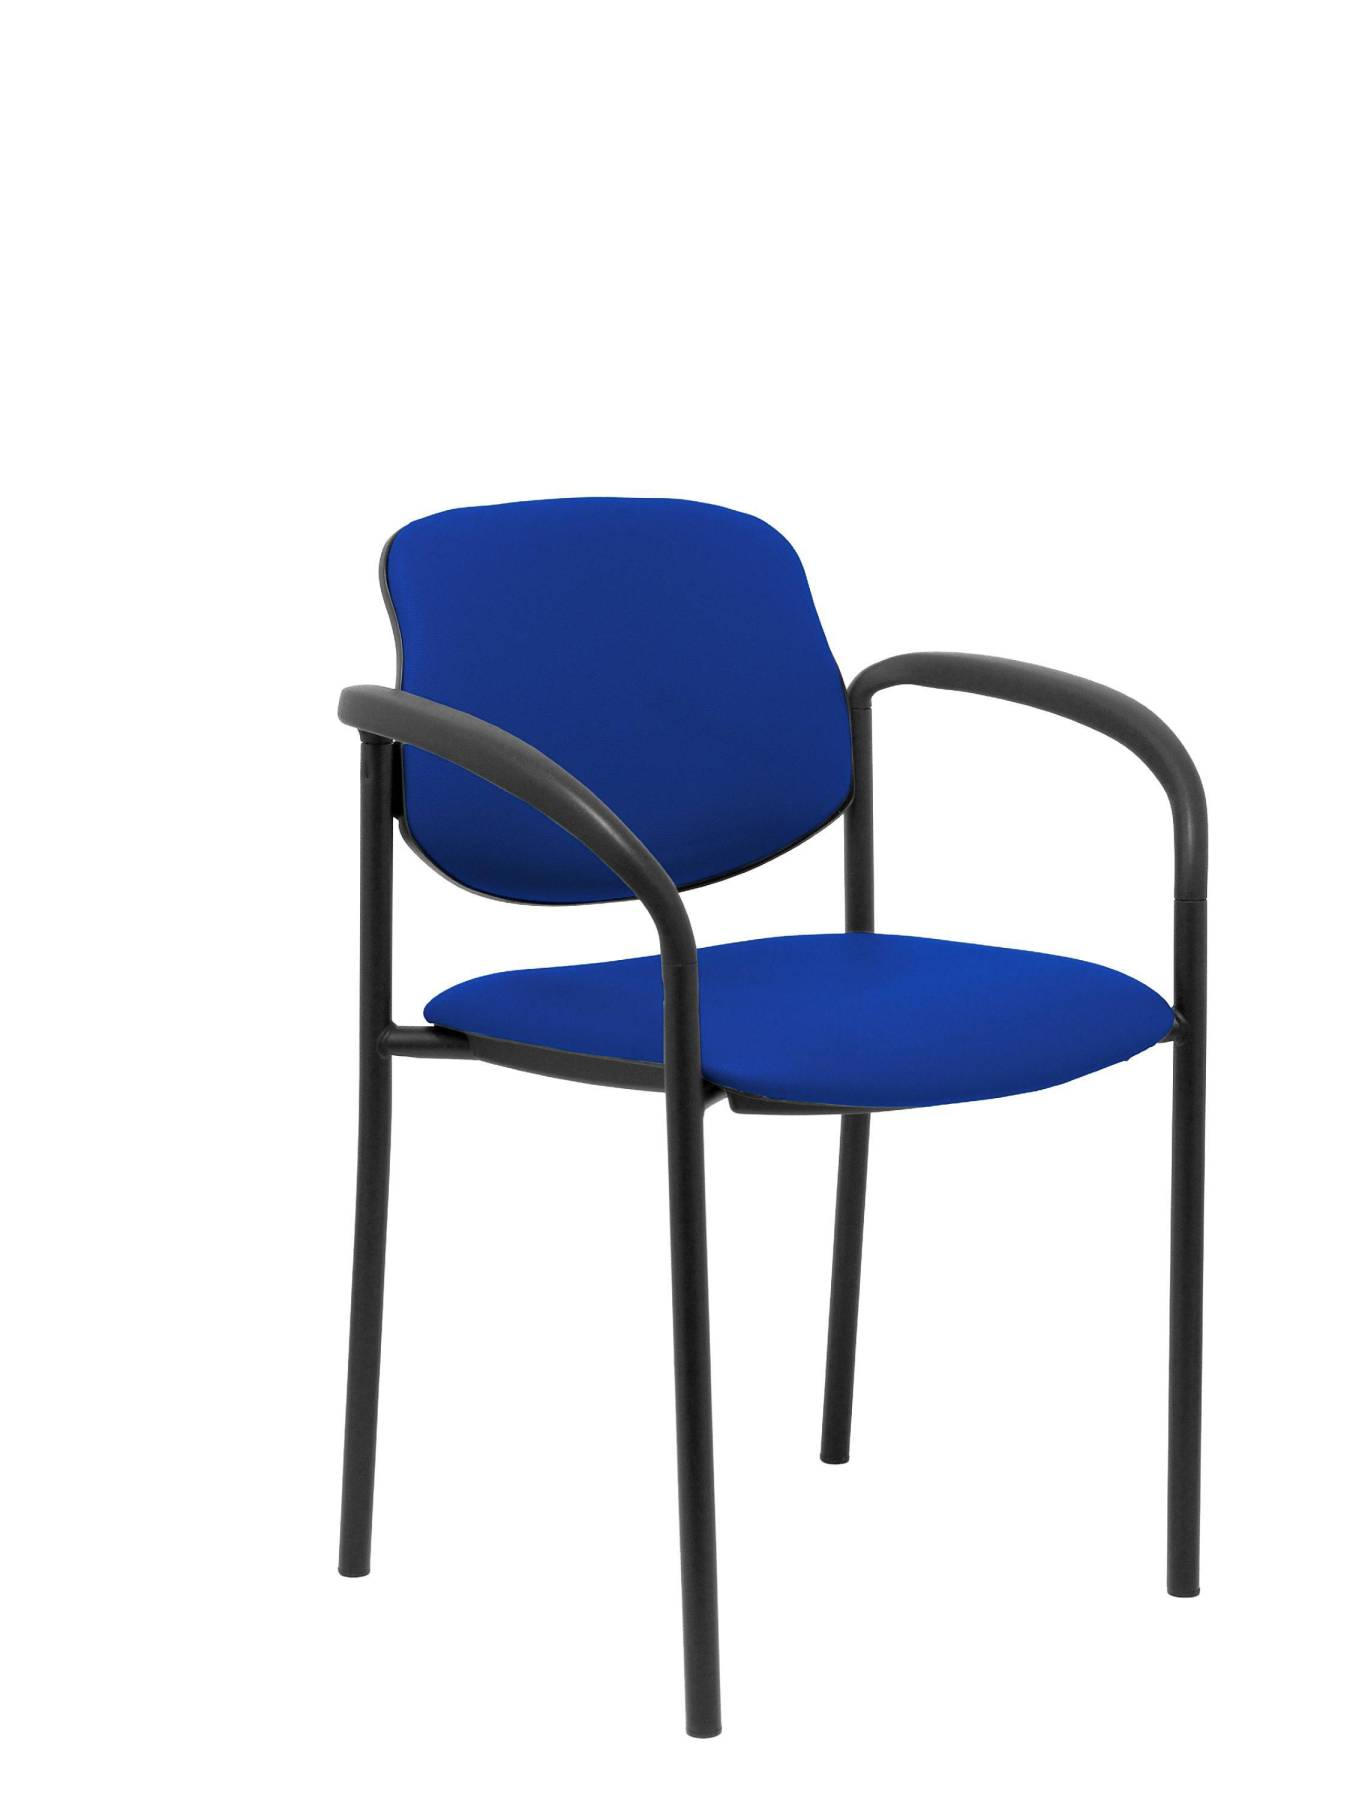 Visitor Chair 4's Topsy, With Arms And Estructrua Negro-up Seat And Backstop Upholstered In Tissue Similpiel Blue PIQUE